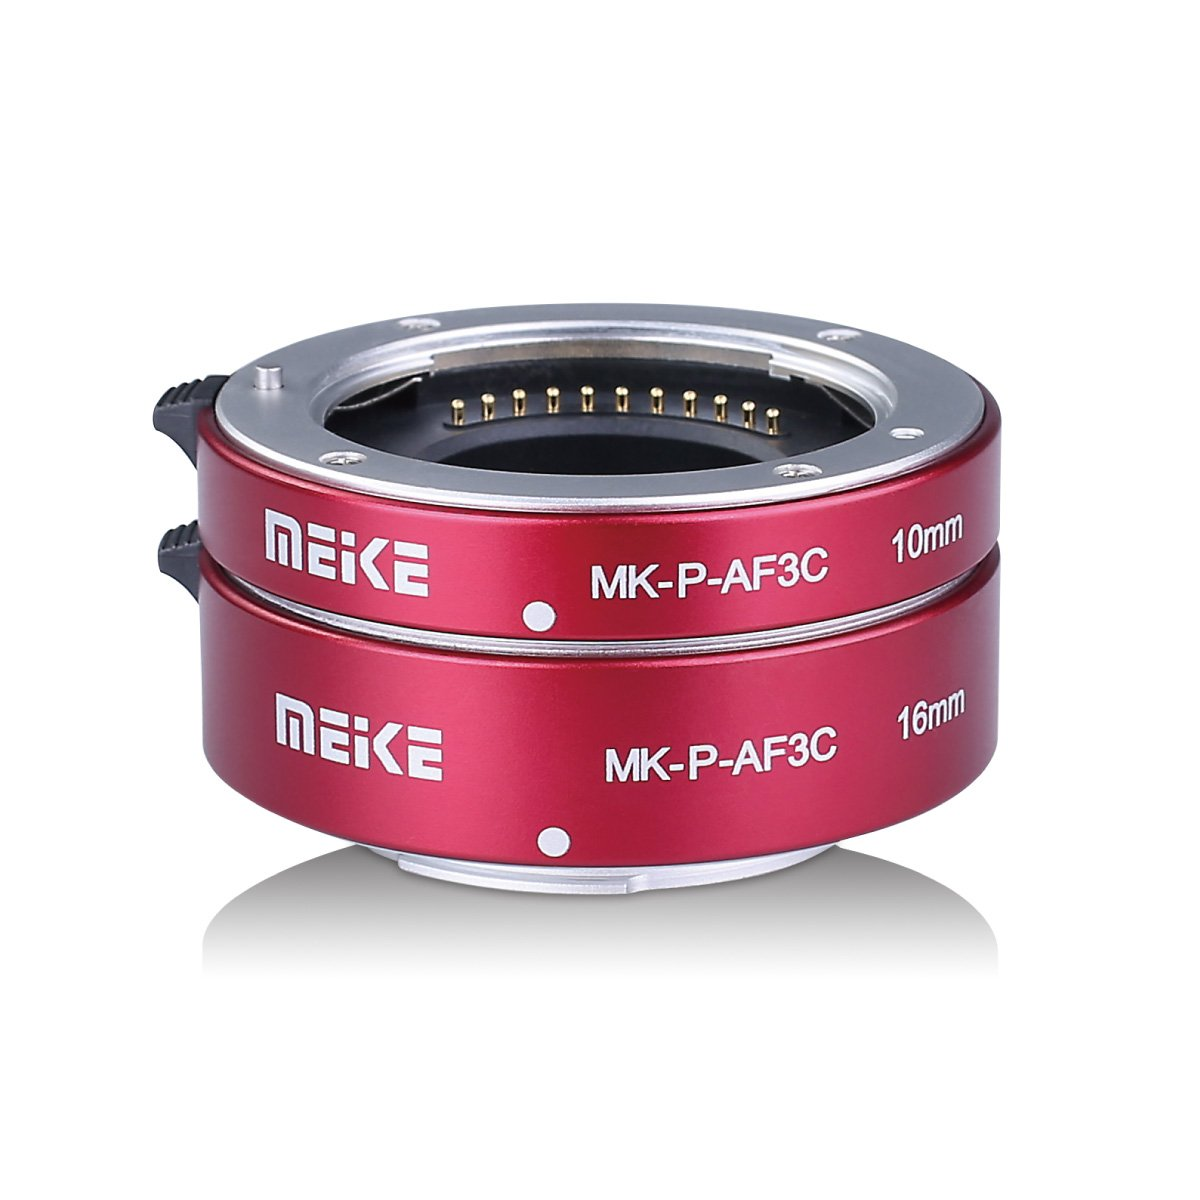 MEIKE MK-P-AF3C Red All Metal Auto Focus 10MM 16MM Macro Extension Tube For Olympus Panasonic Micro Four Thirds M4/3 System Camera Lenses